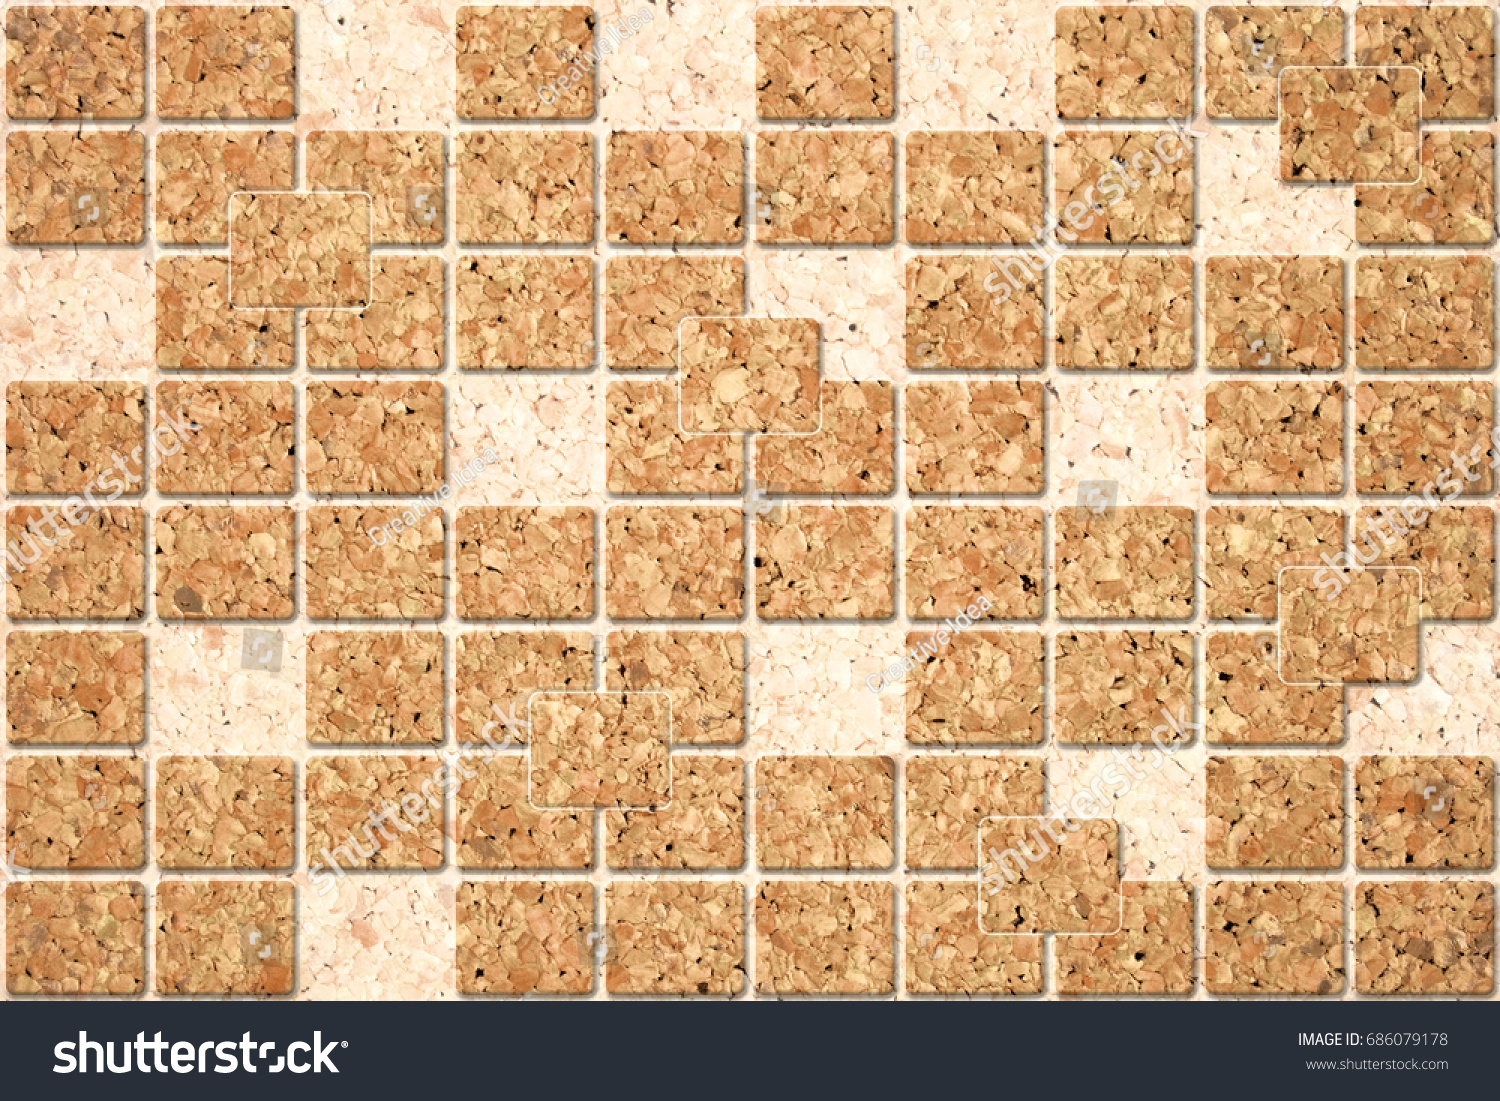 Cool Peel And Stick Mosaic Decorative Wall Tile Images - The Wall ...